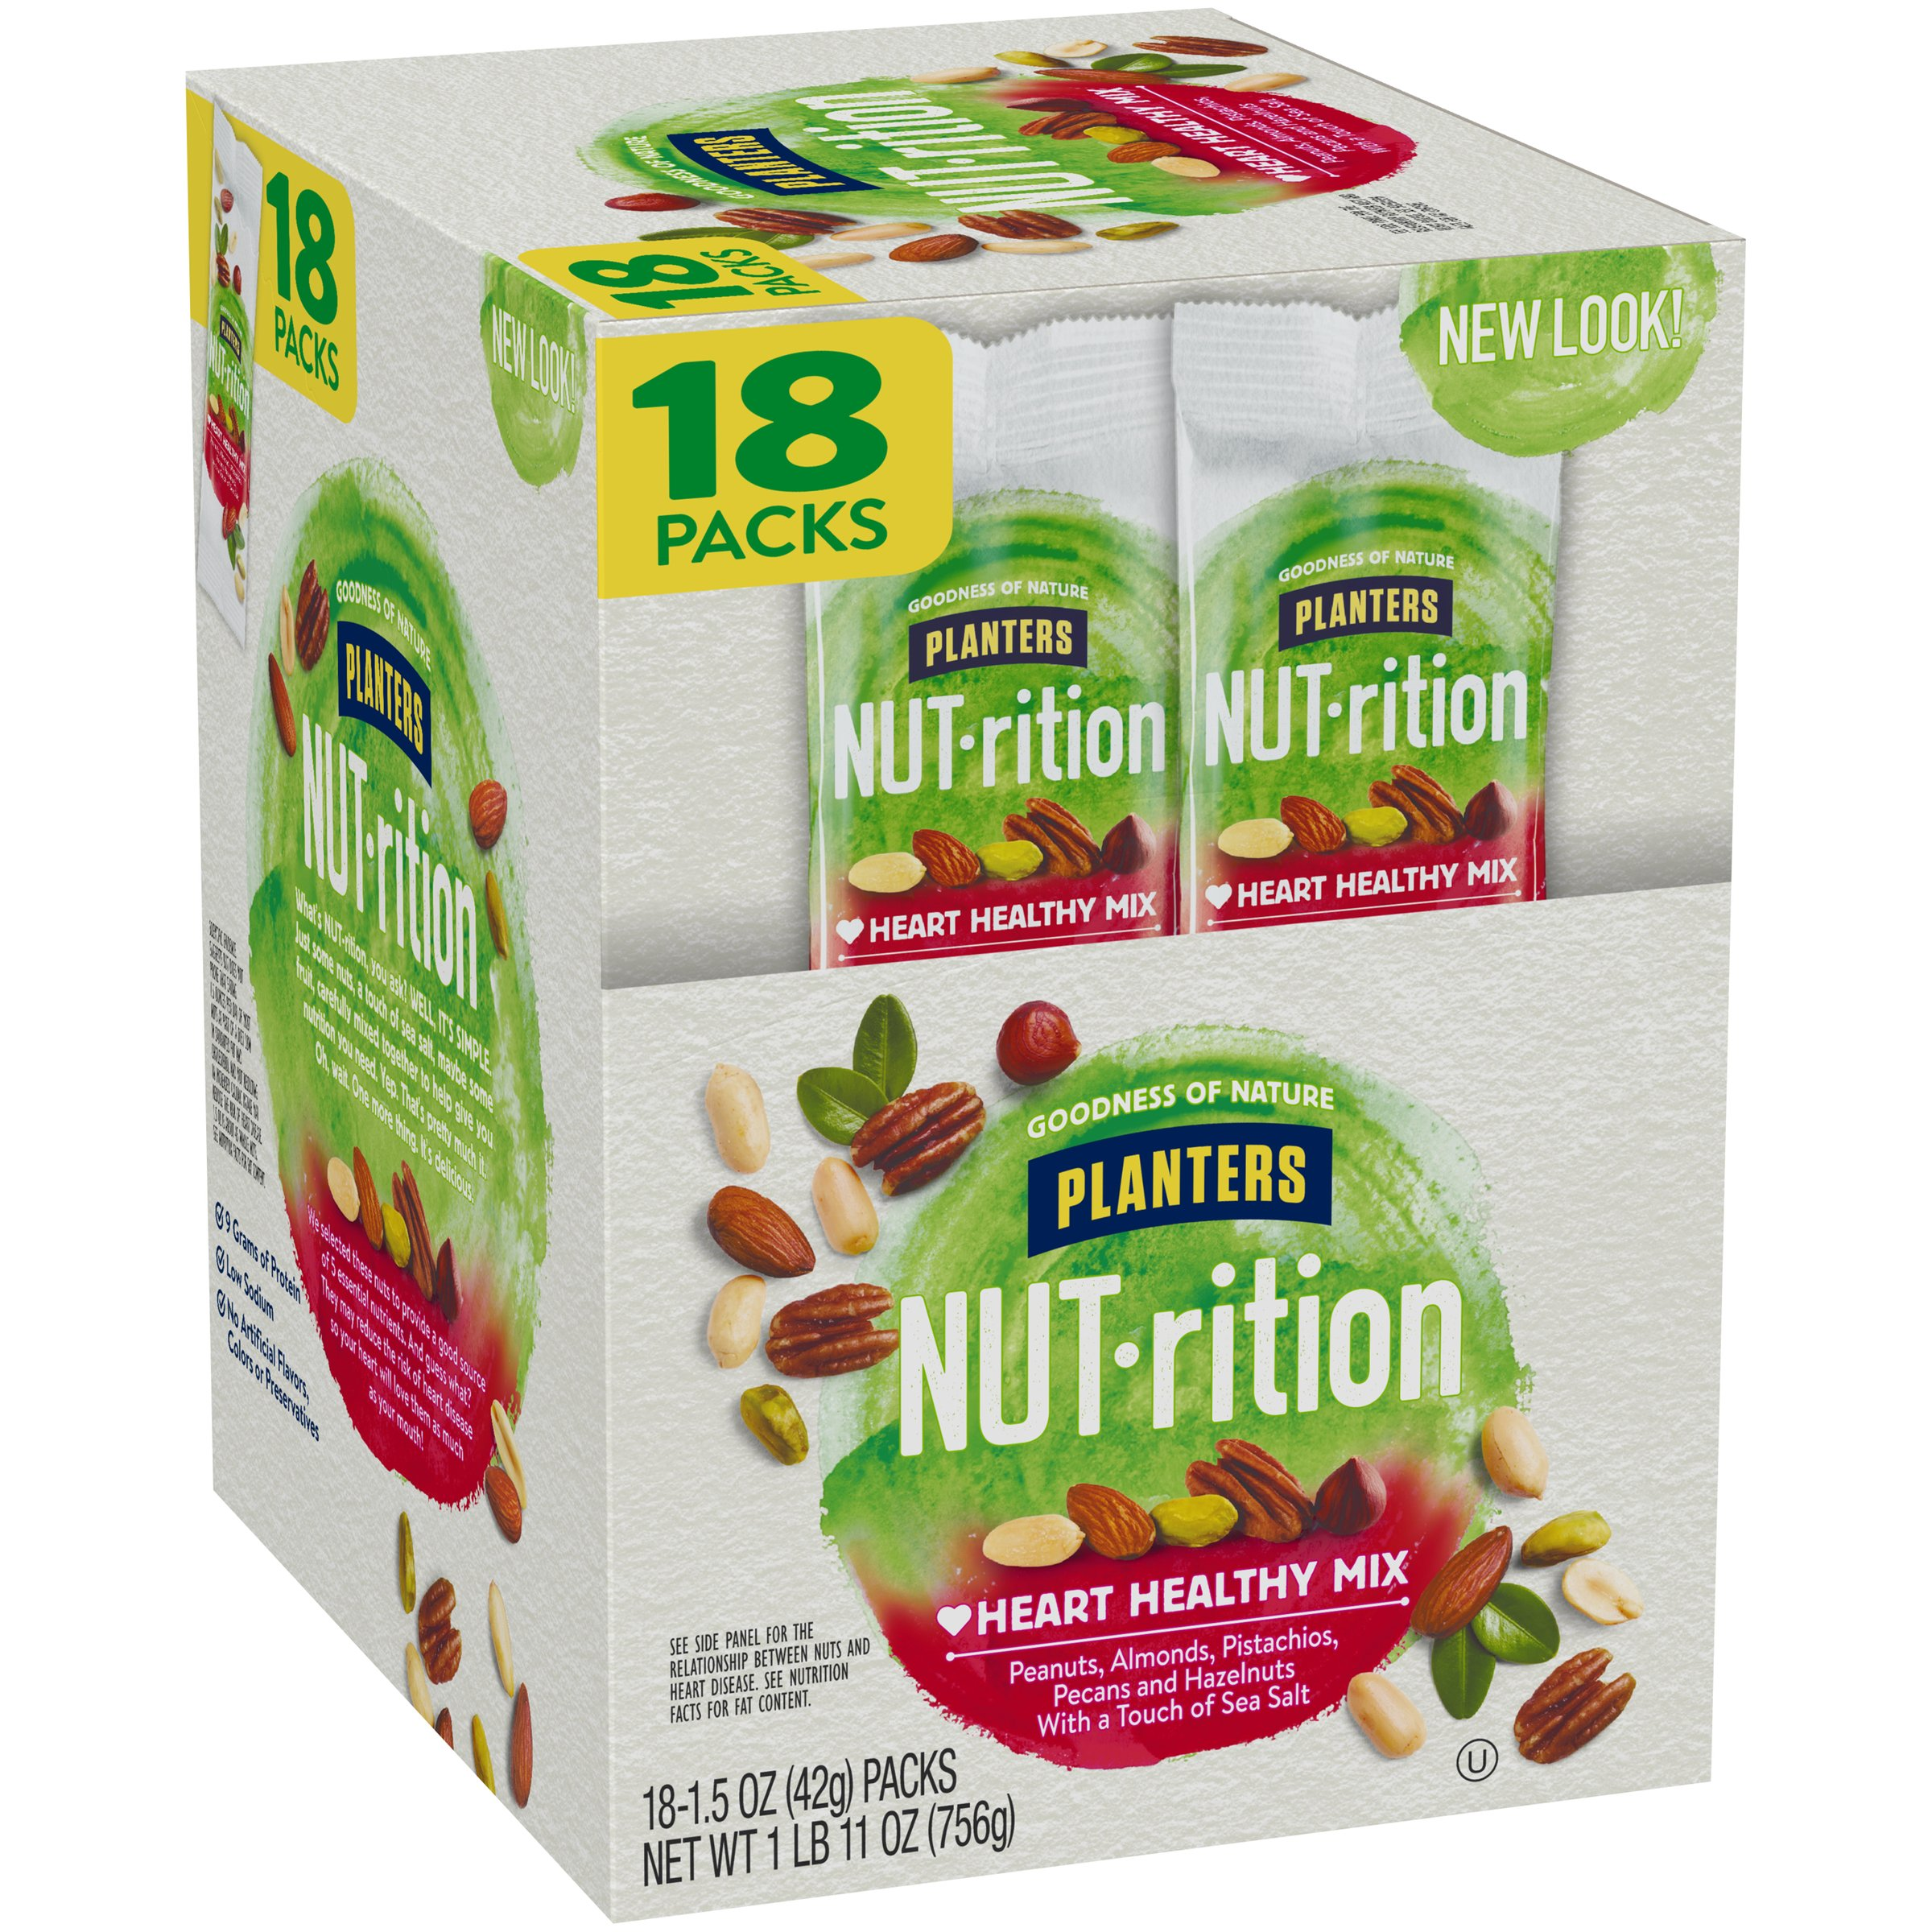 NUTrition Heart Healthy Nut Mix (1.5 oz Bags, Pack of 18) by Planters (Image #5)